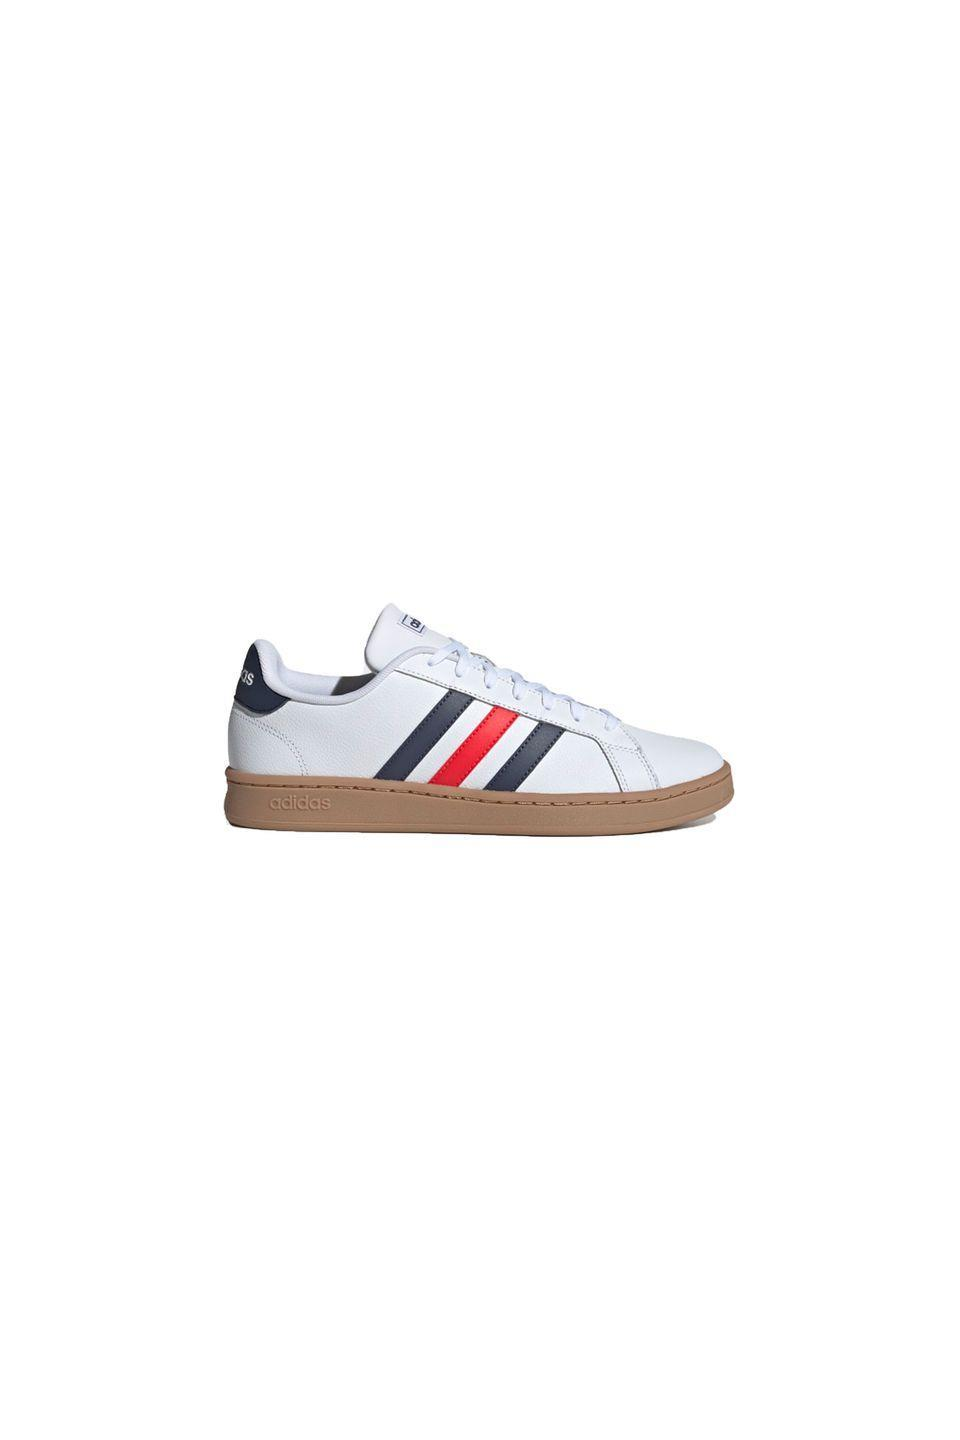 """<p>Trainers, £60, Adidas<br><br><a class=""""link rapid-noclick-resp"""" href=""""https://go.redirectingat.com?id=127X1599956&url=https%3A%2F%2Fwww.adidas.co.uk%2Fgrand-court-shoes%2FEE7888.html&sref=https%3A%2F%2Fwww.townandcountrymag.com%2Fuk%2Fstyle%2Fg34571556%2Fstyle-icon-princess-anne%2F"""" rel=""""nofollow noopener"""" target=""""_blank"""" data-ylk=""""slk:SHOP NOW"""">SHOP NOW</a></p>"""